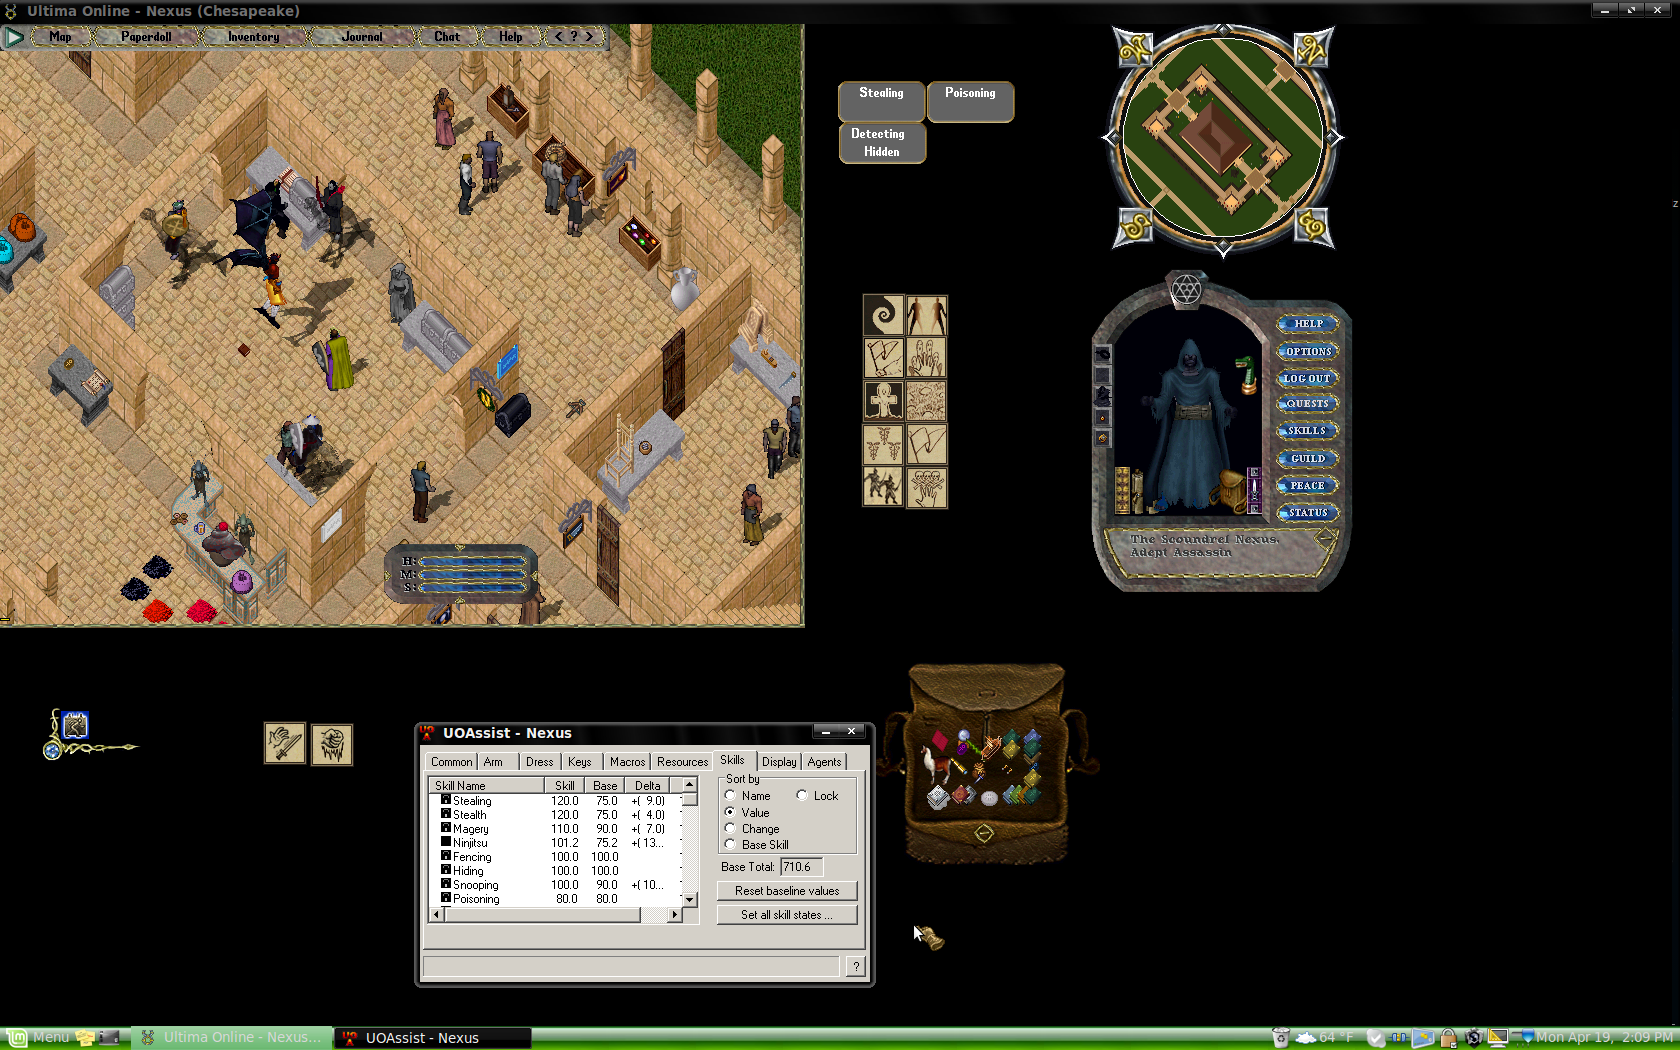 uo on Linux